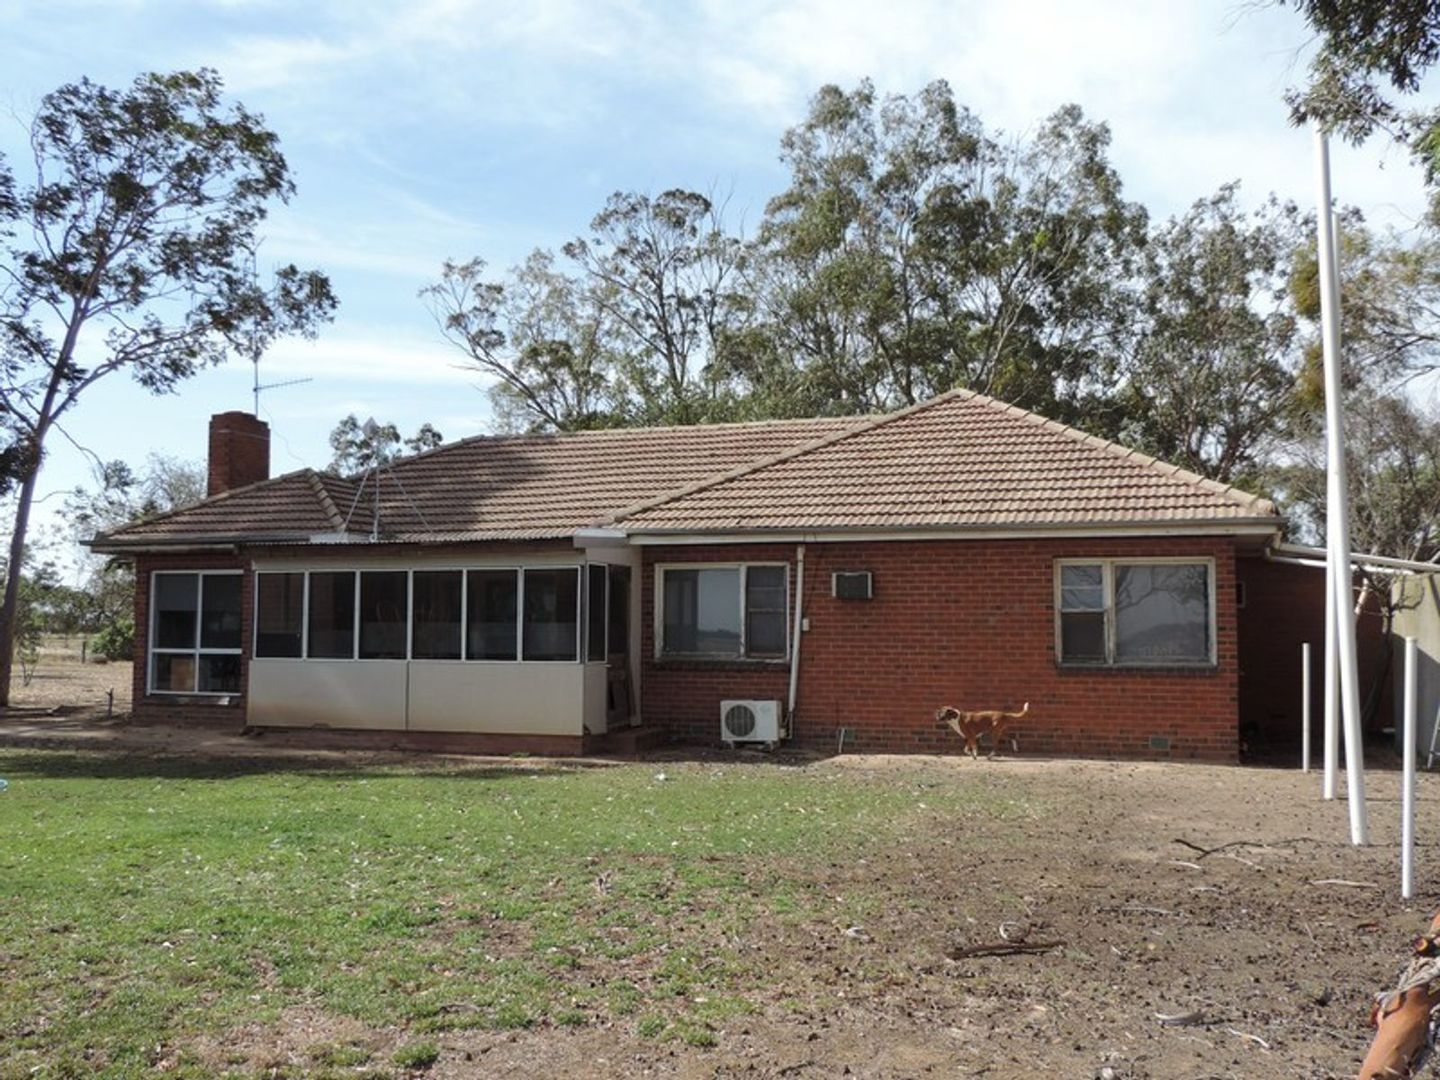 7681 Murray Valley Highway, Milnes Bridge VIC 3579, Image 0